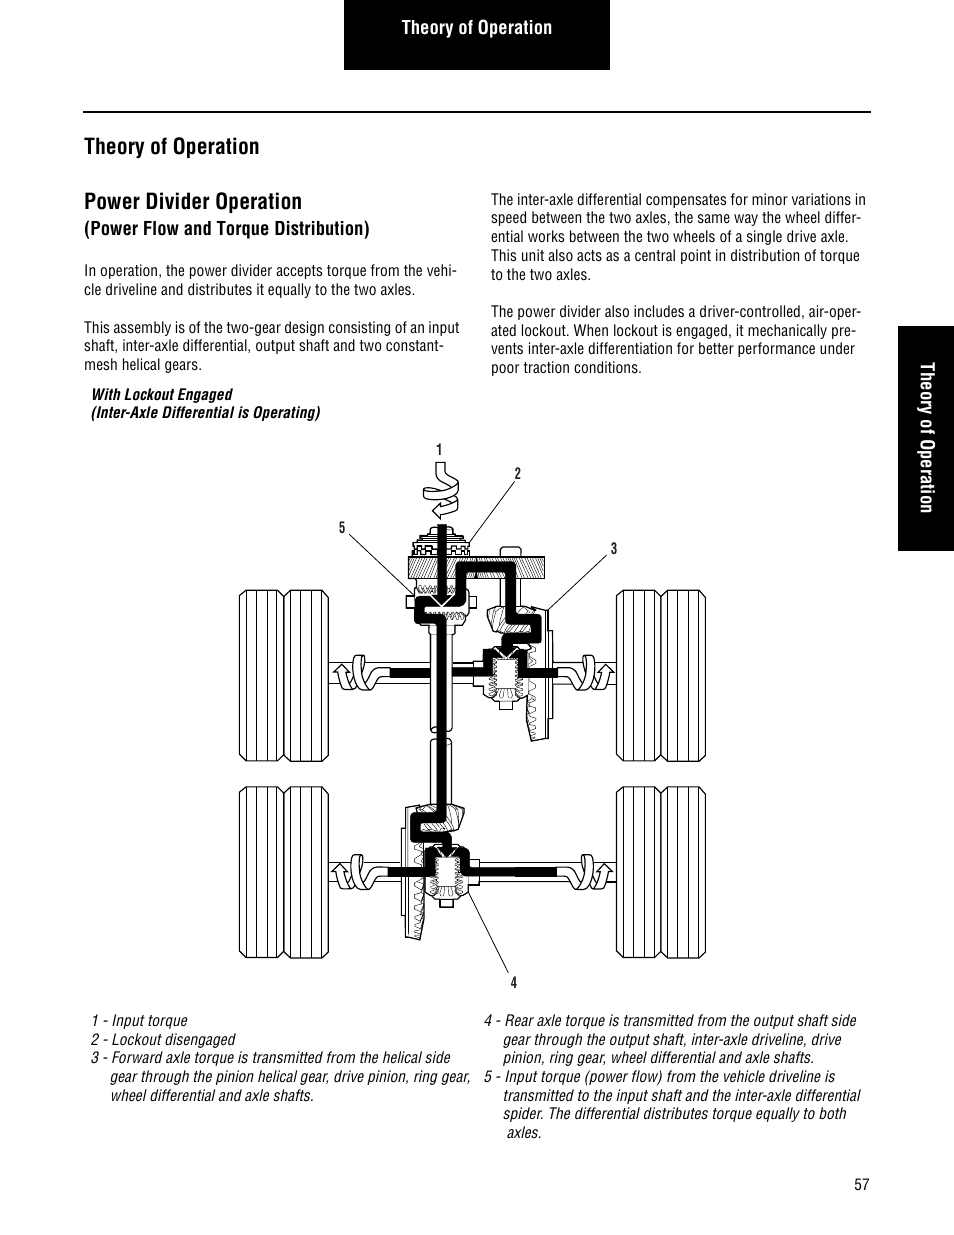 hight resolution of theory of operation power divider operation power flow and torque distribution spicer convertible tandem axles user manual page 63 72